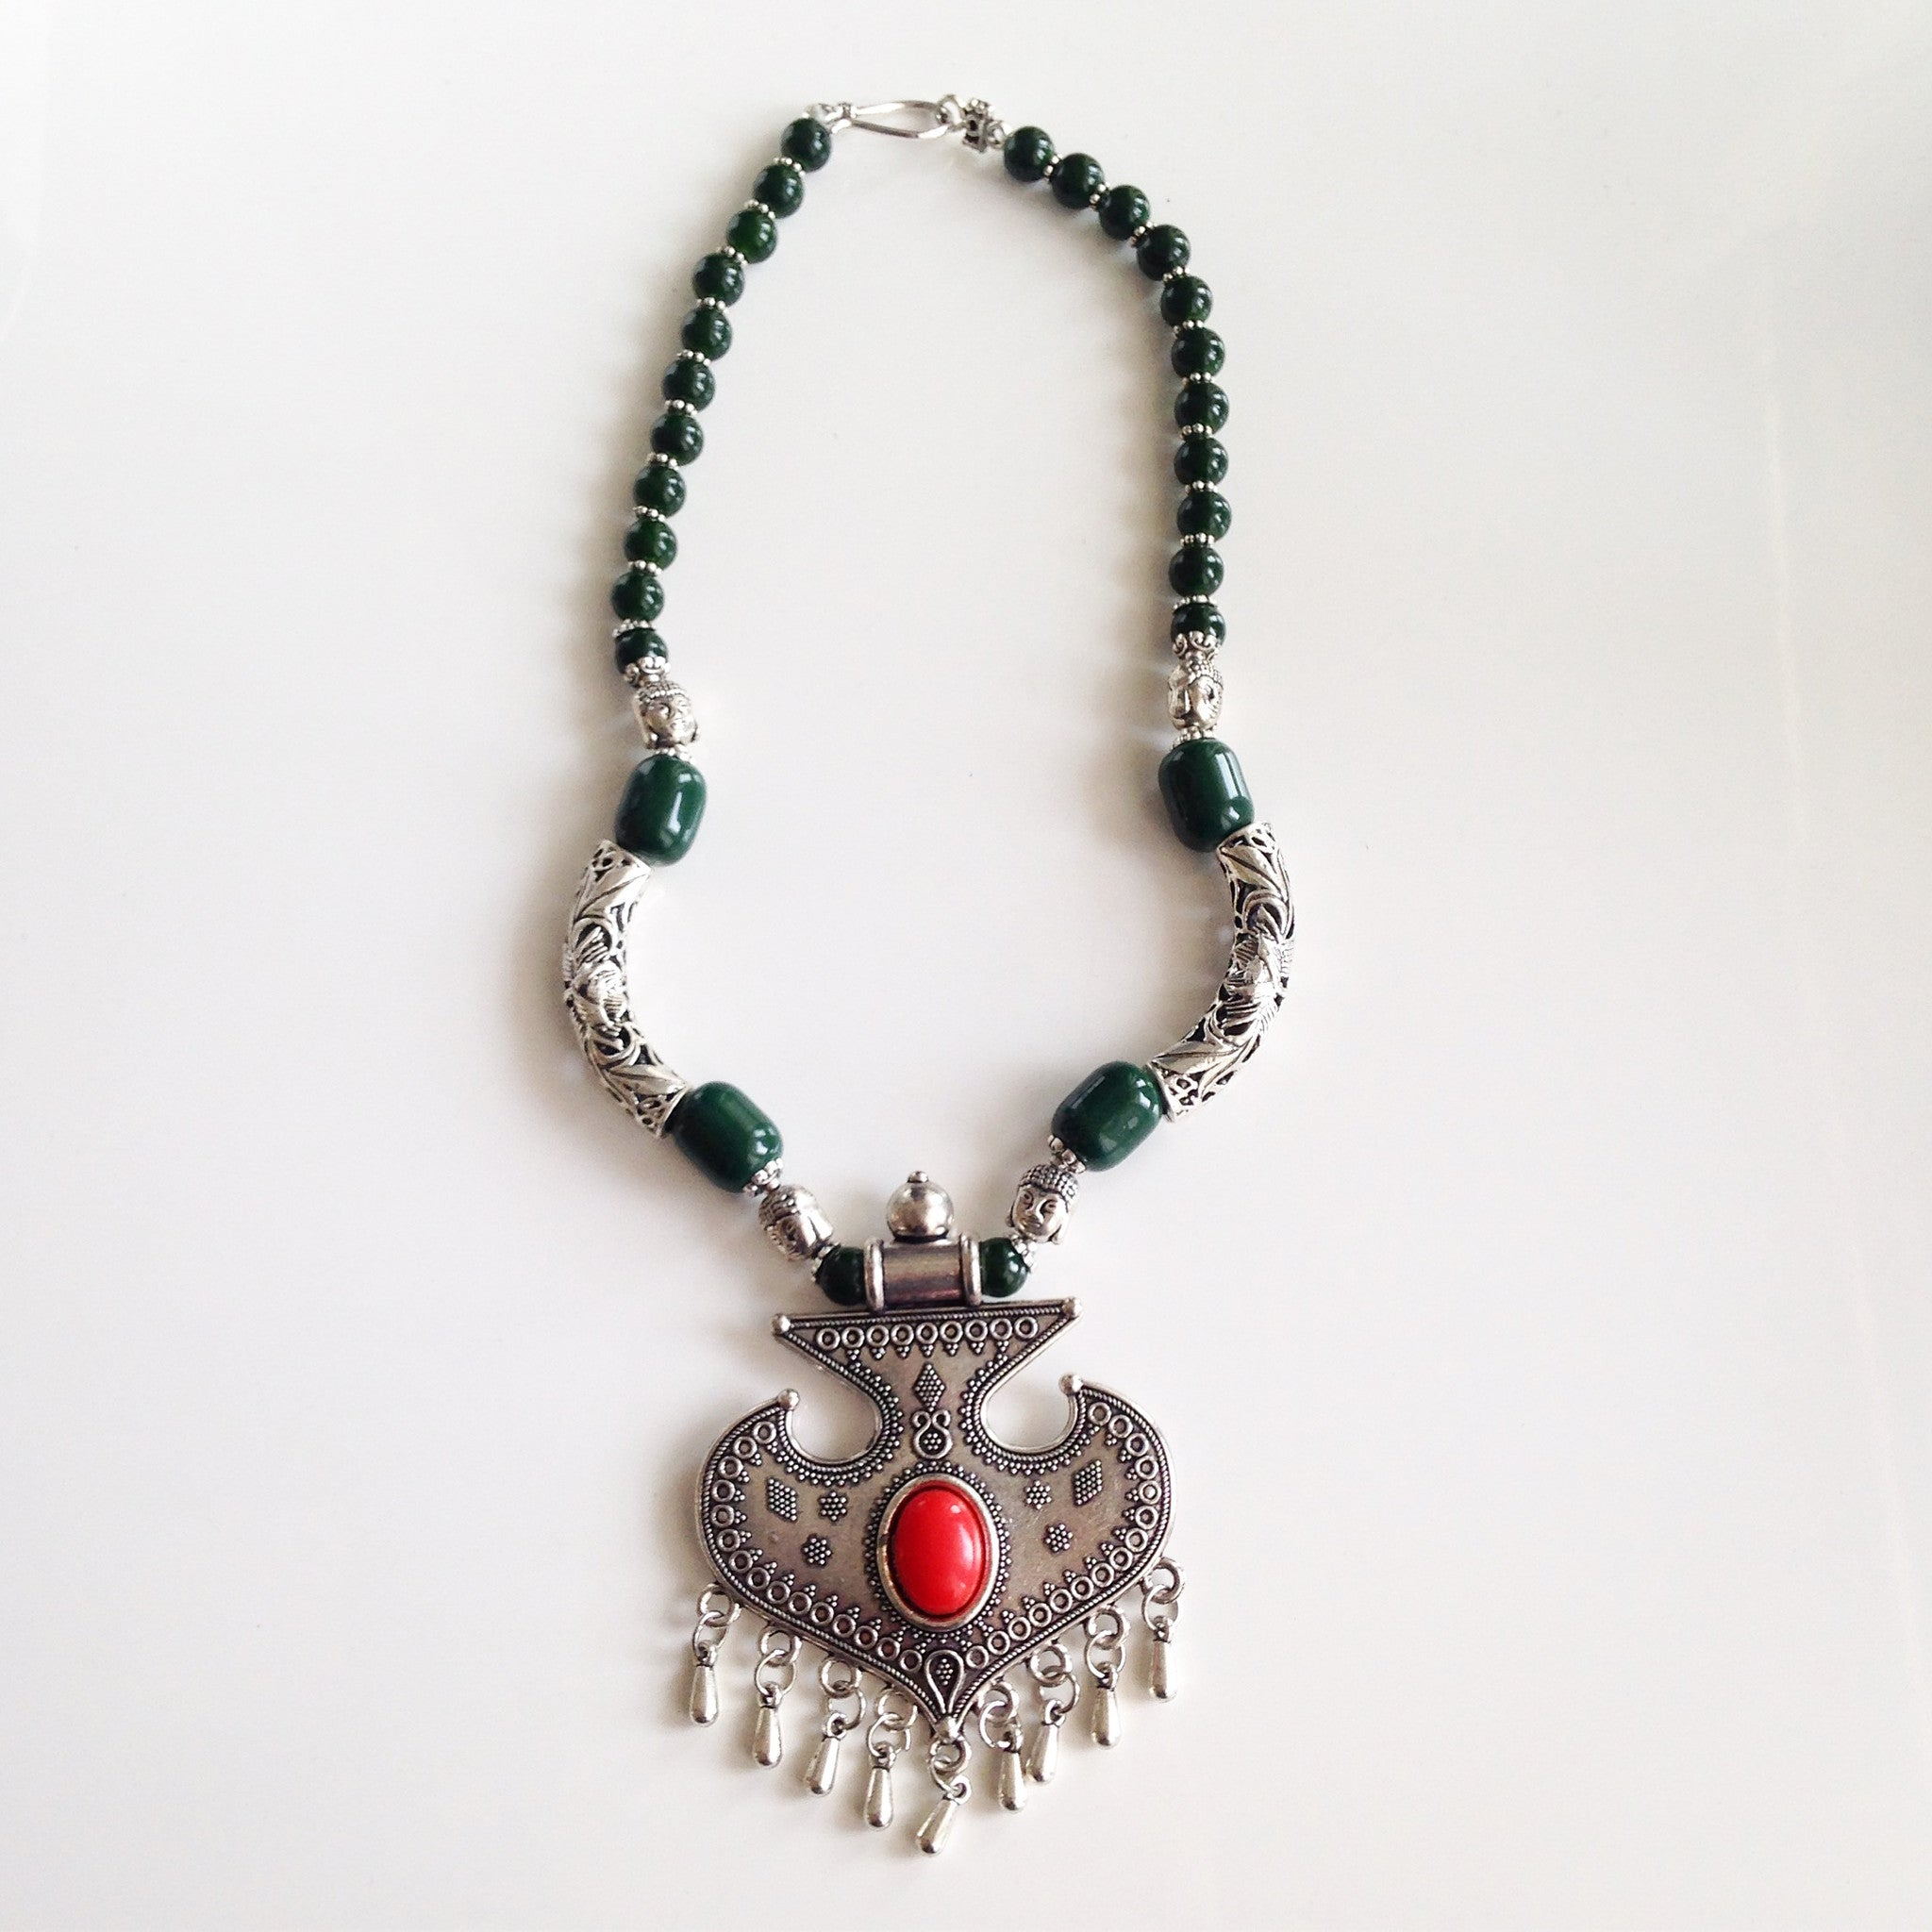 BUDDHA BEAD GREEN NECKLACE - Flauntandfun